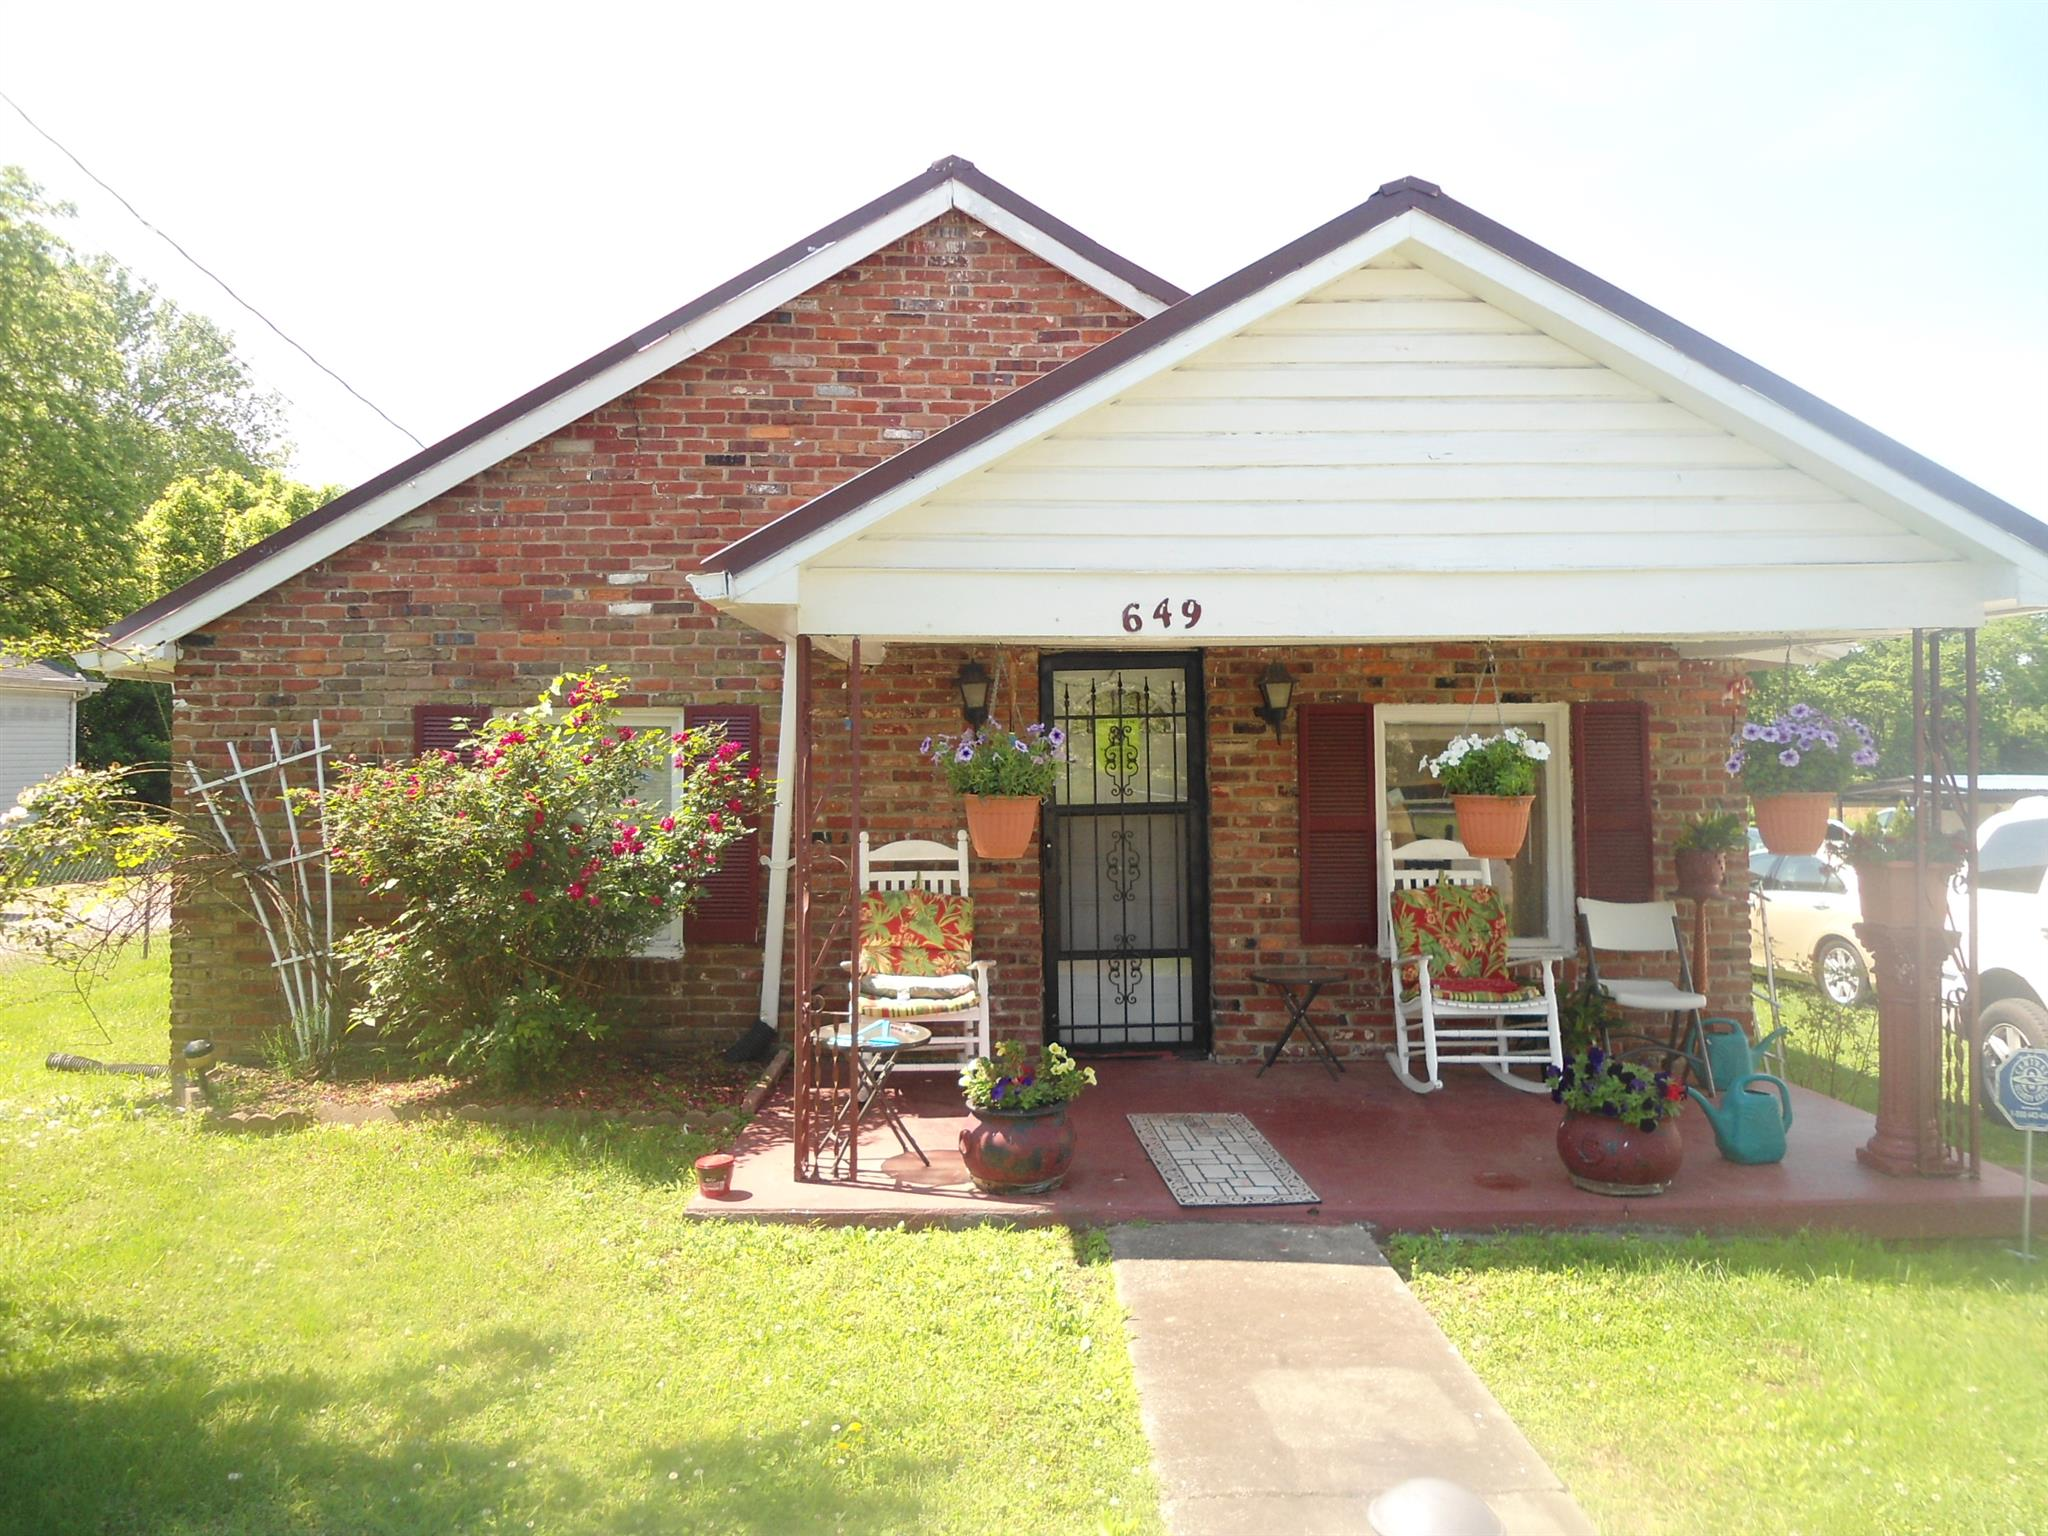 649 W Eastland St, Gallatin in Sumner County County, TN 37066 Home for Sale